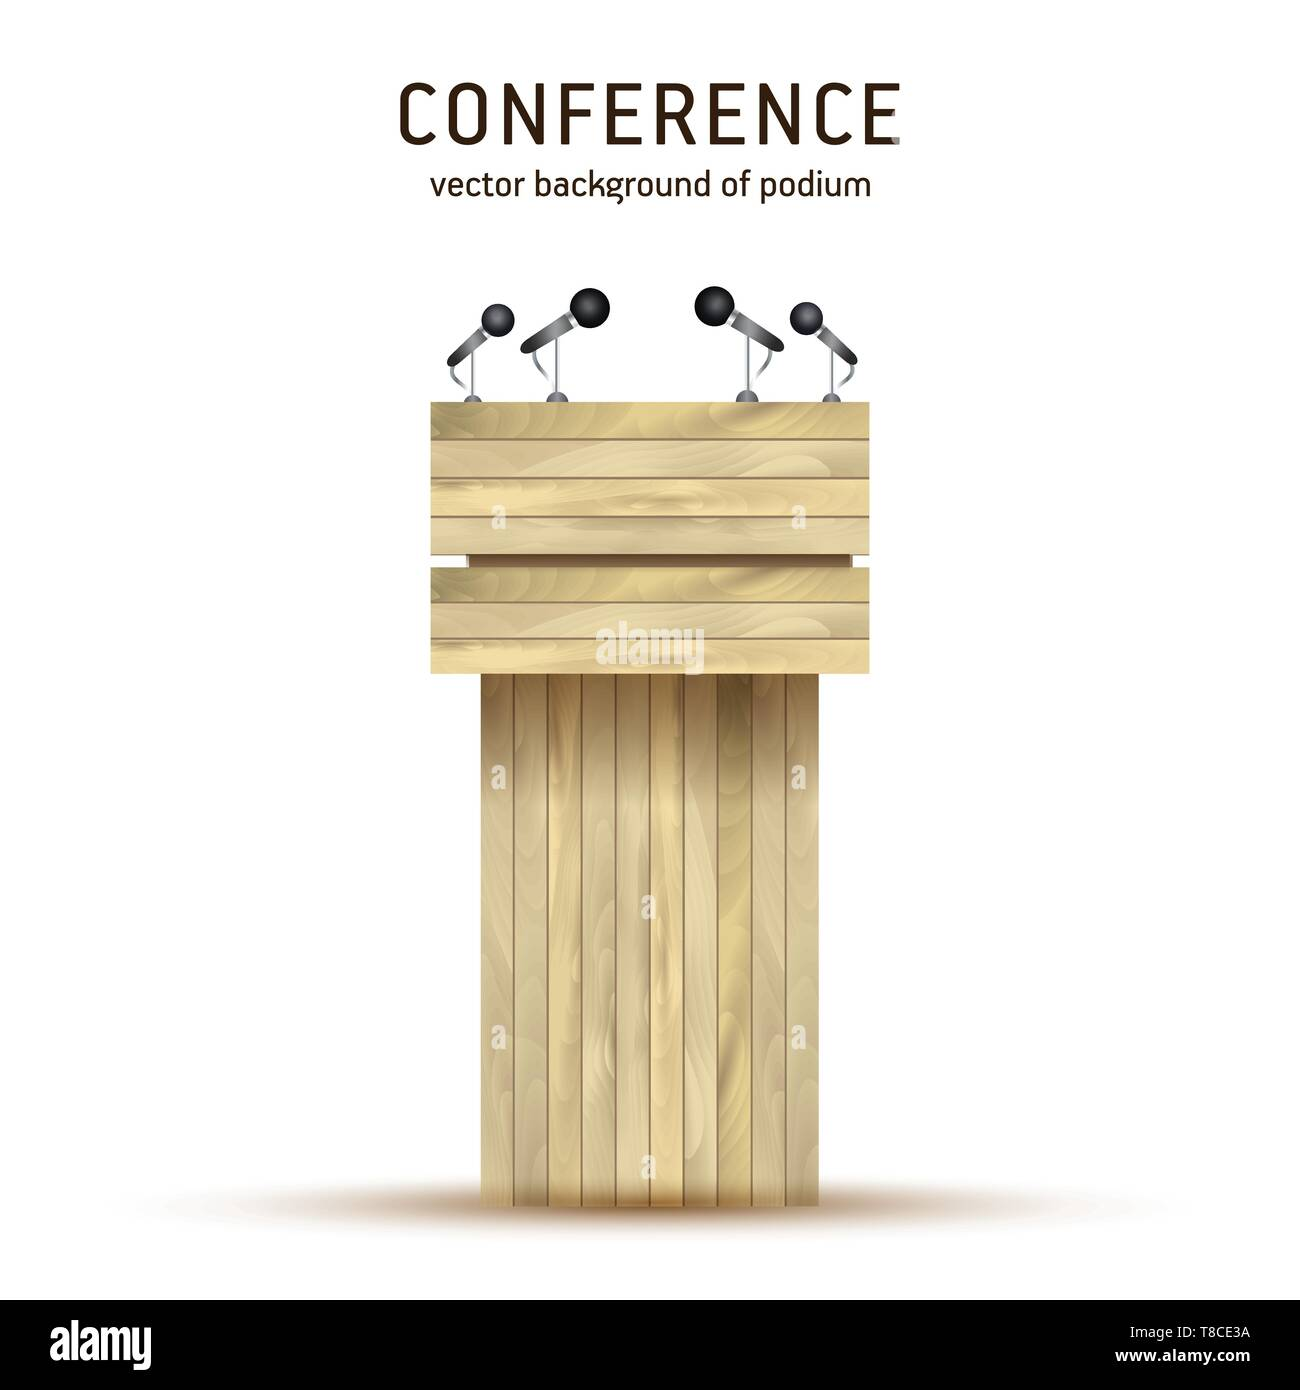 Podium Tribune Vector of wooden  Debate Podium Rostrum Stand